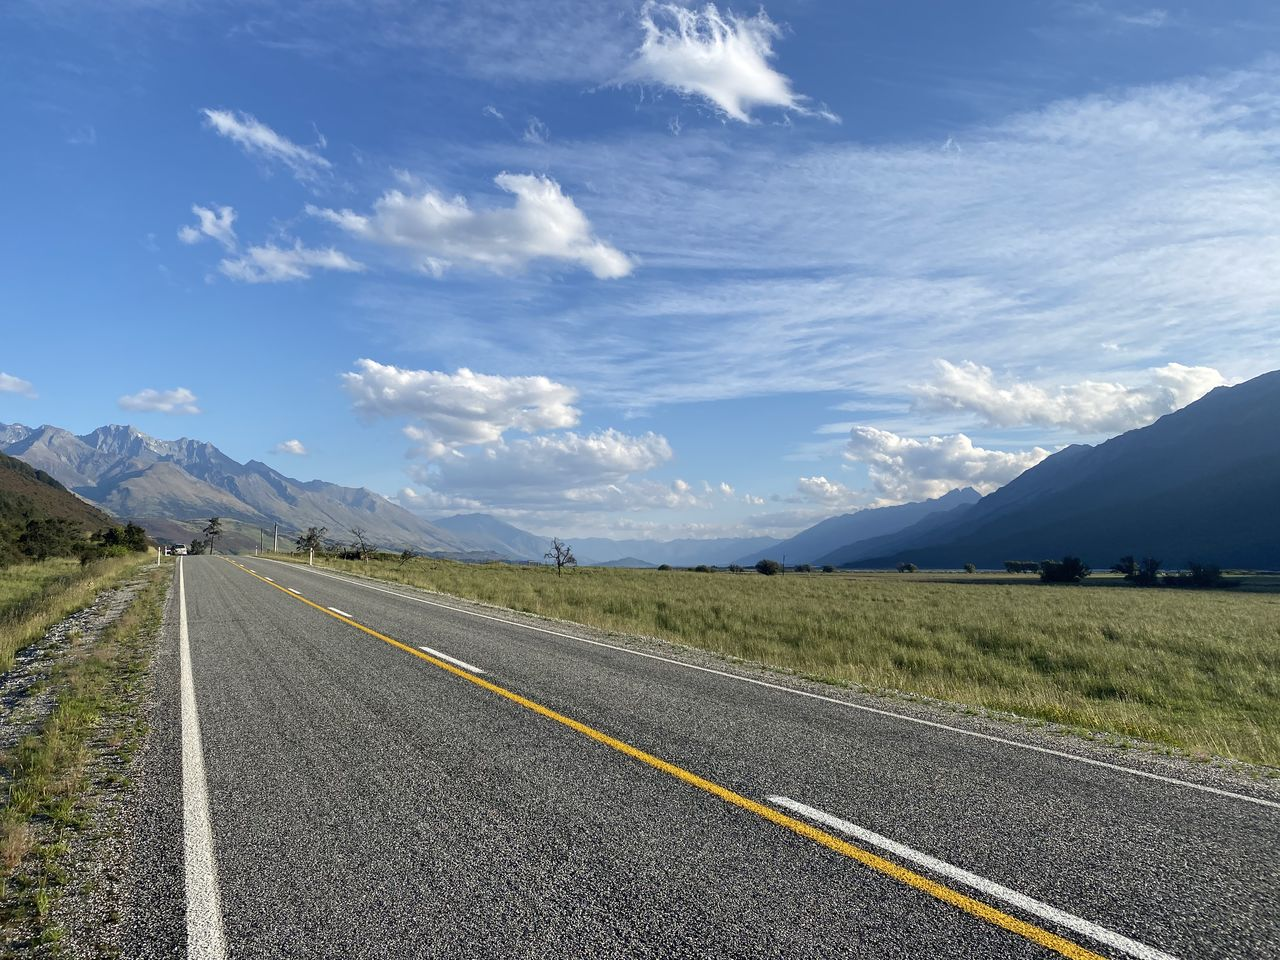 mountain, sky, road, transportation, cloud - sky, road marking, direction, marking, scenics - nature, sign, beauty in nature, the way forward, nature, no people, day, environment, landscape, mountain range, symbol, tranquil scene, diminishing perspective, outdoors, dividing line